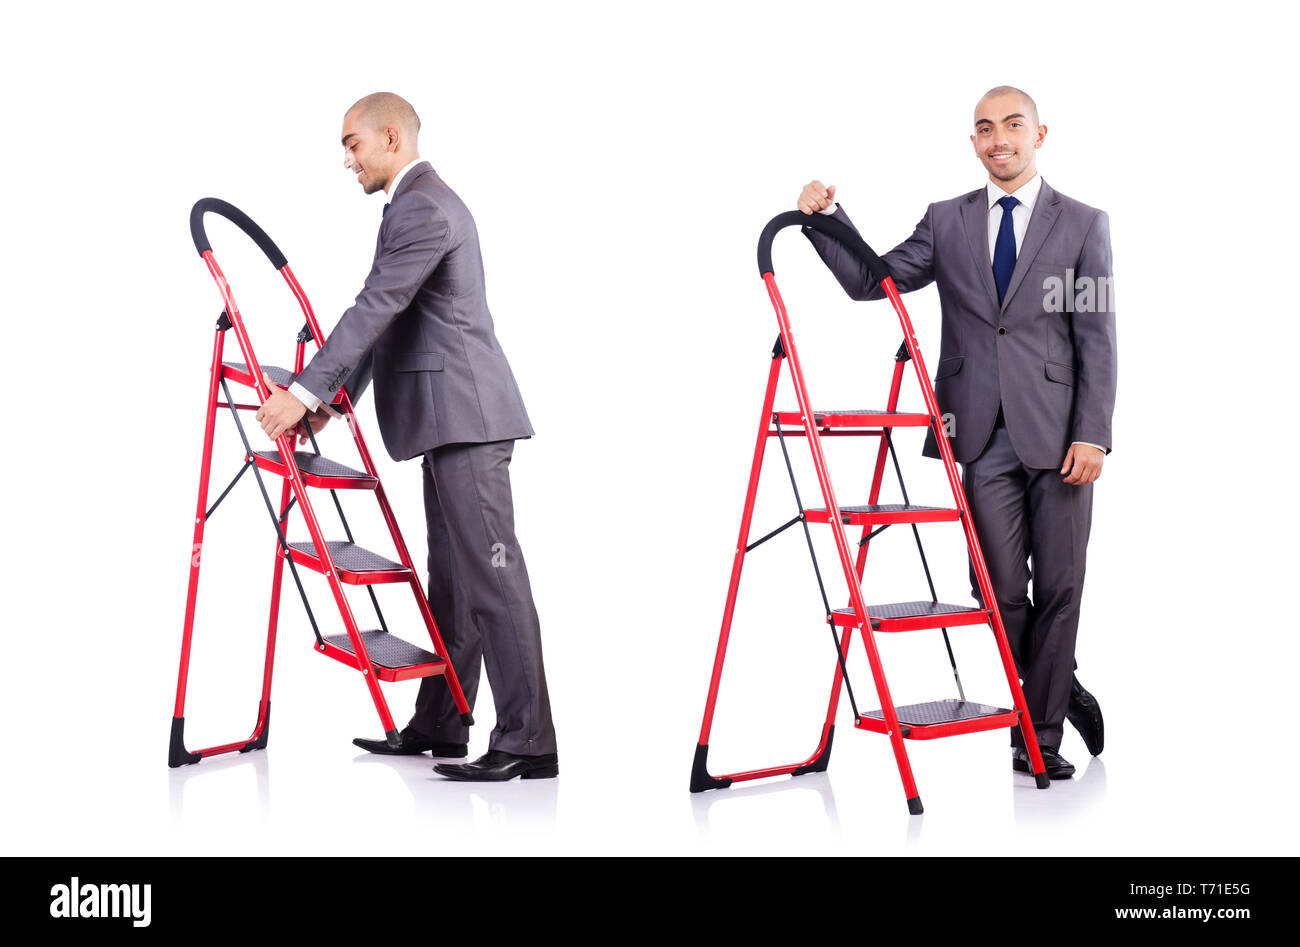 Businessman in career ladder concept - Stock Image